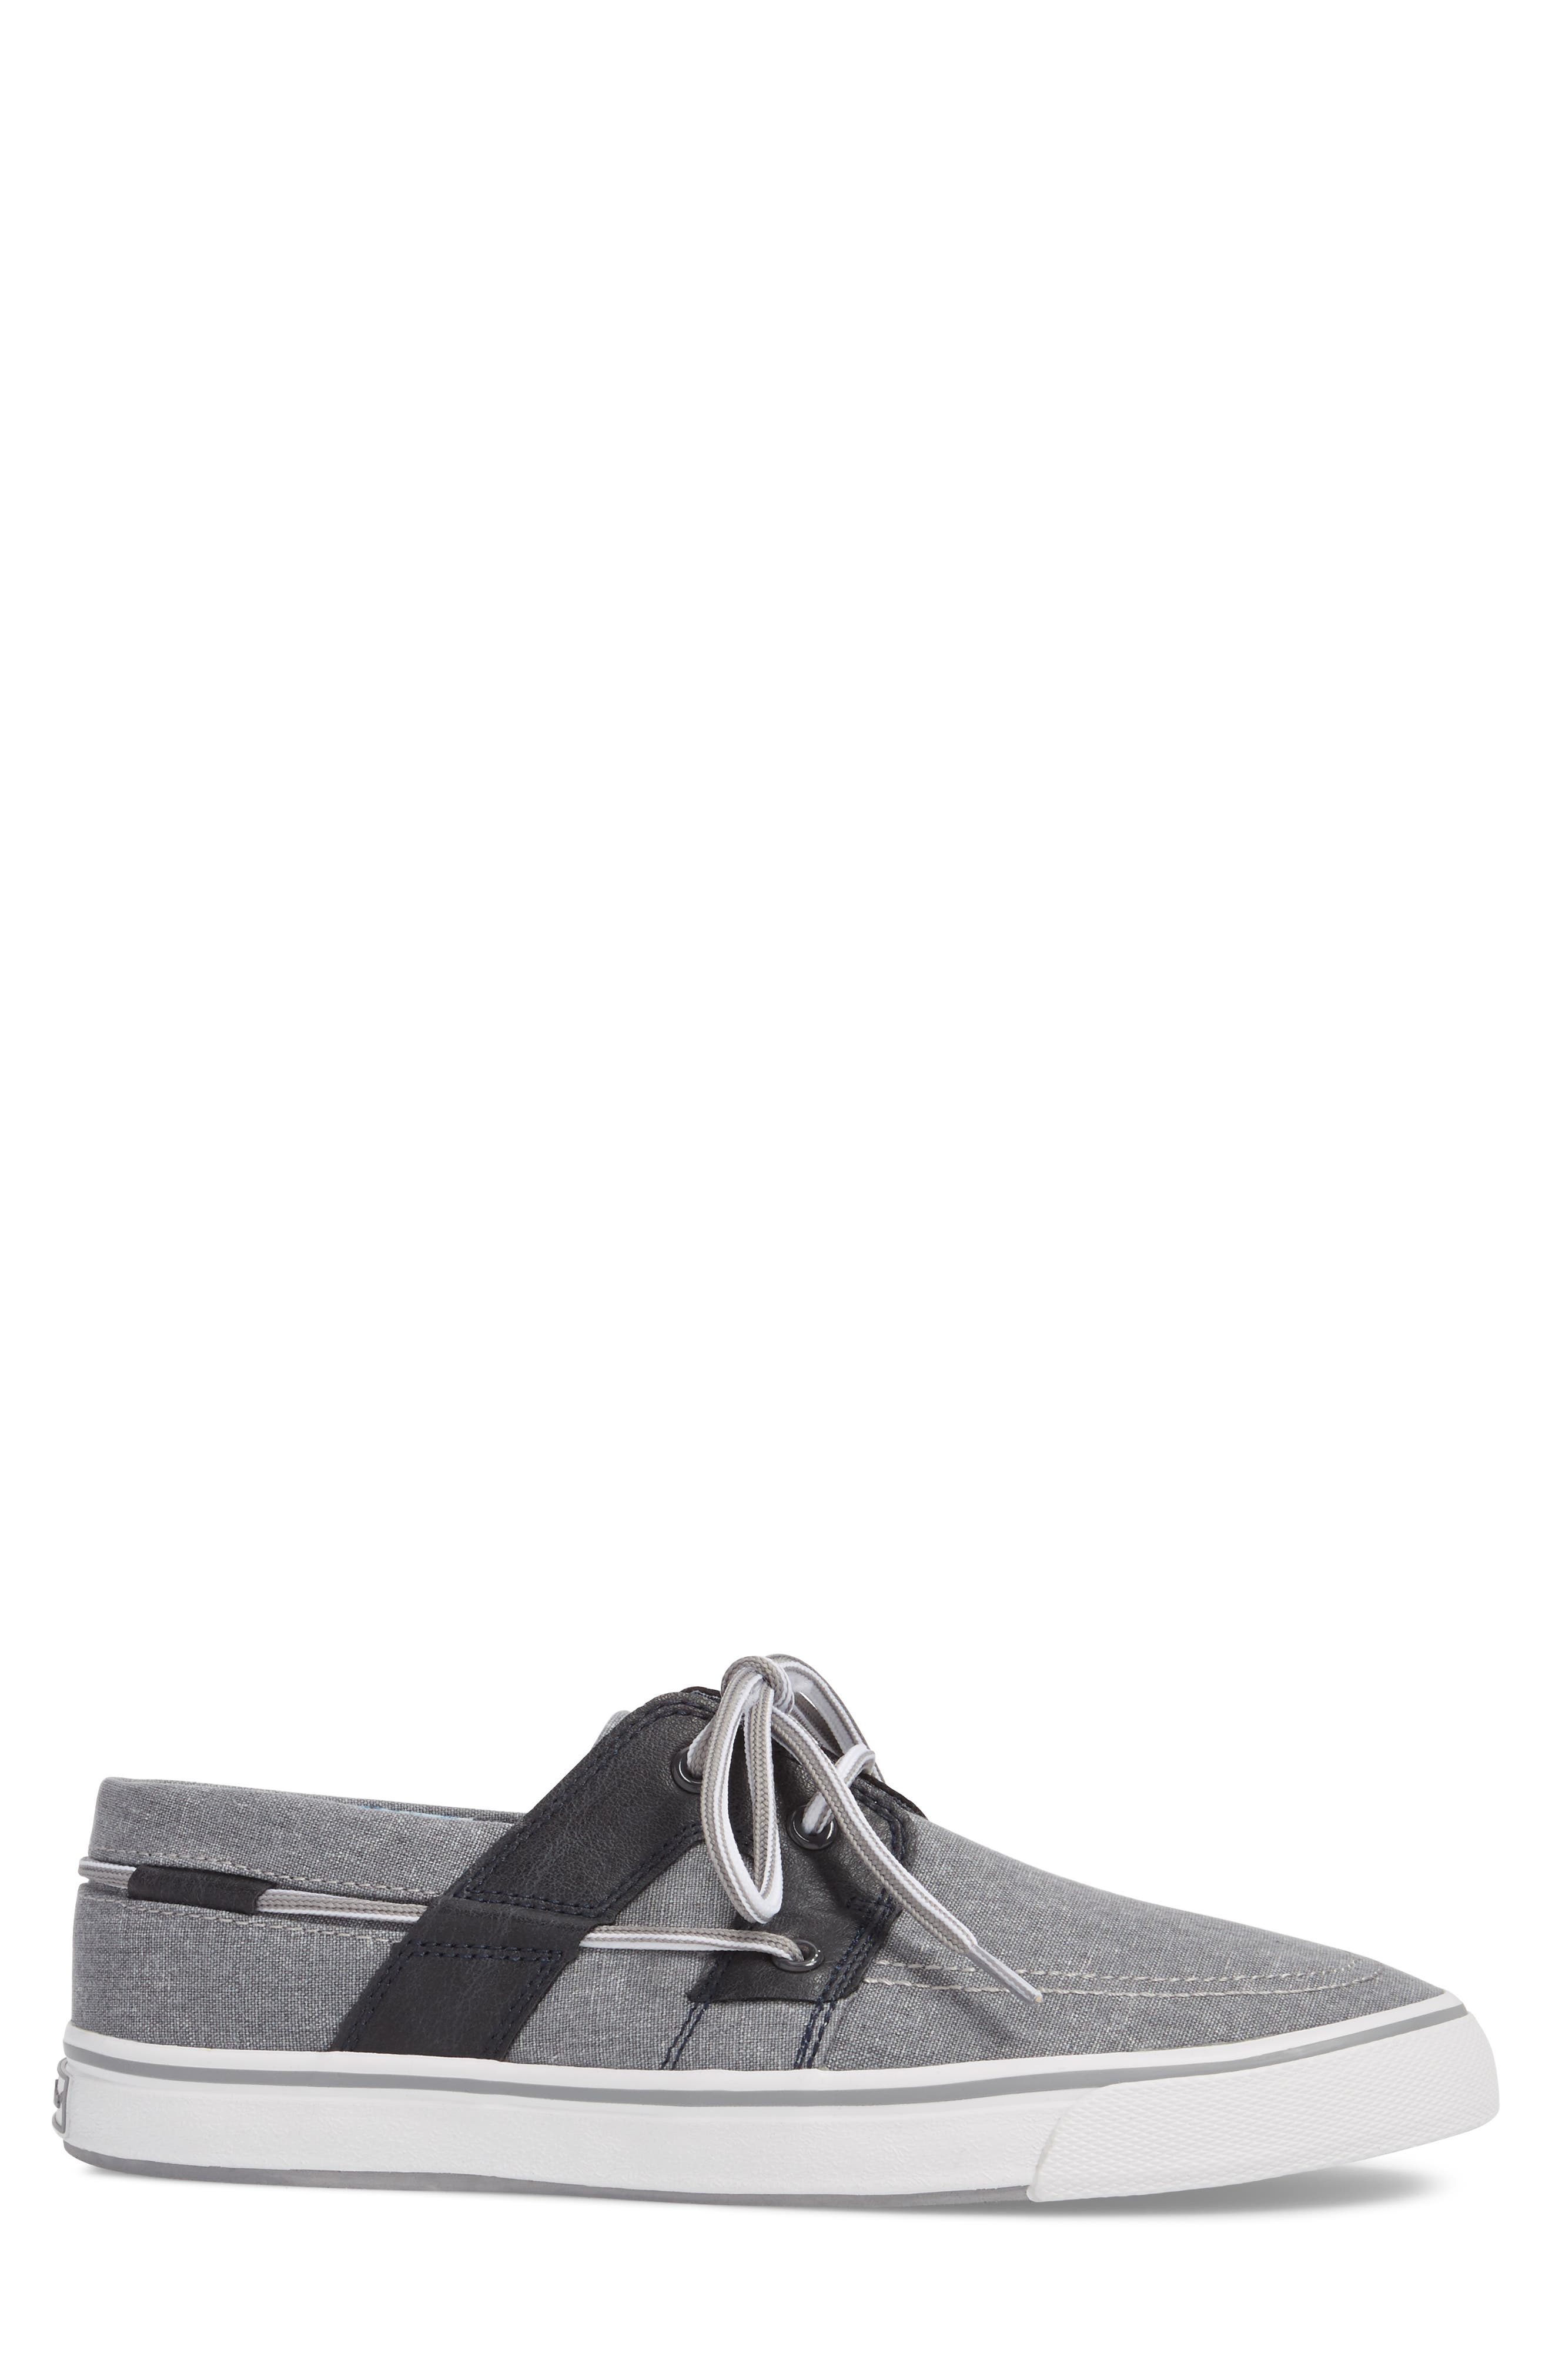 Stripe Breaker Sneaker,                             Alternate thumbnail 3, color,                             GREY/ BLACK LINEN/ LEATHER